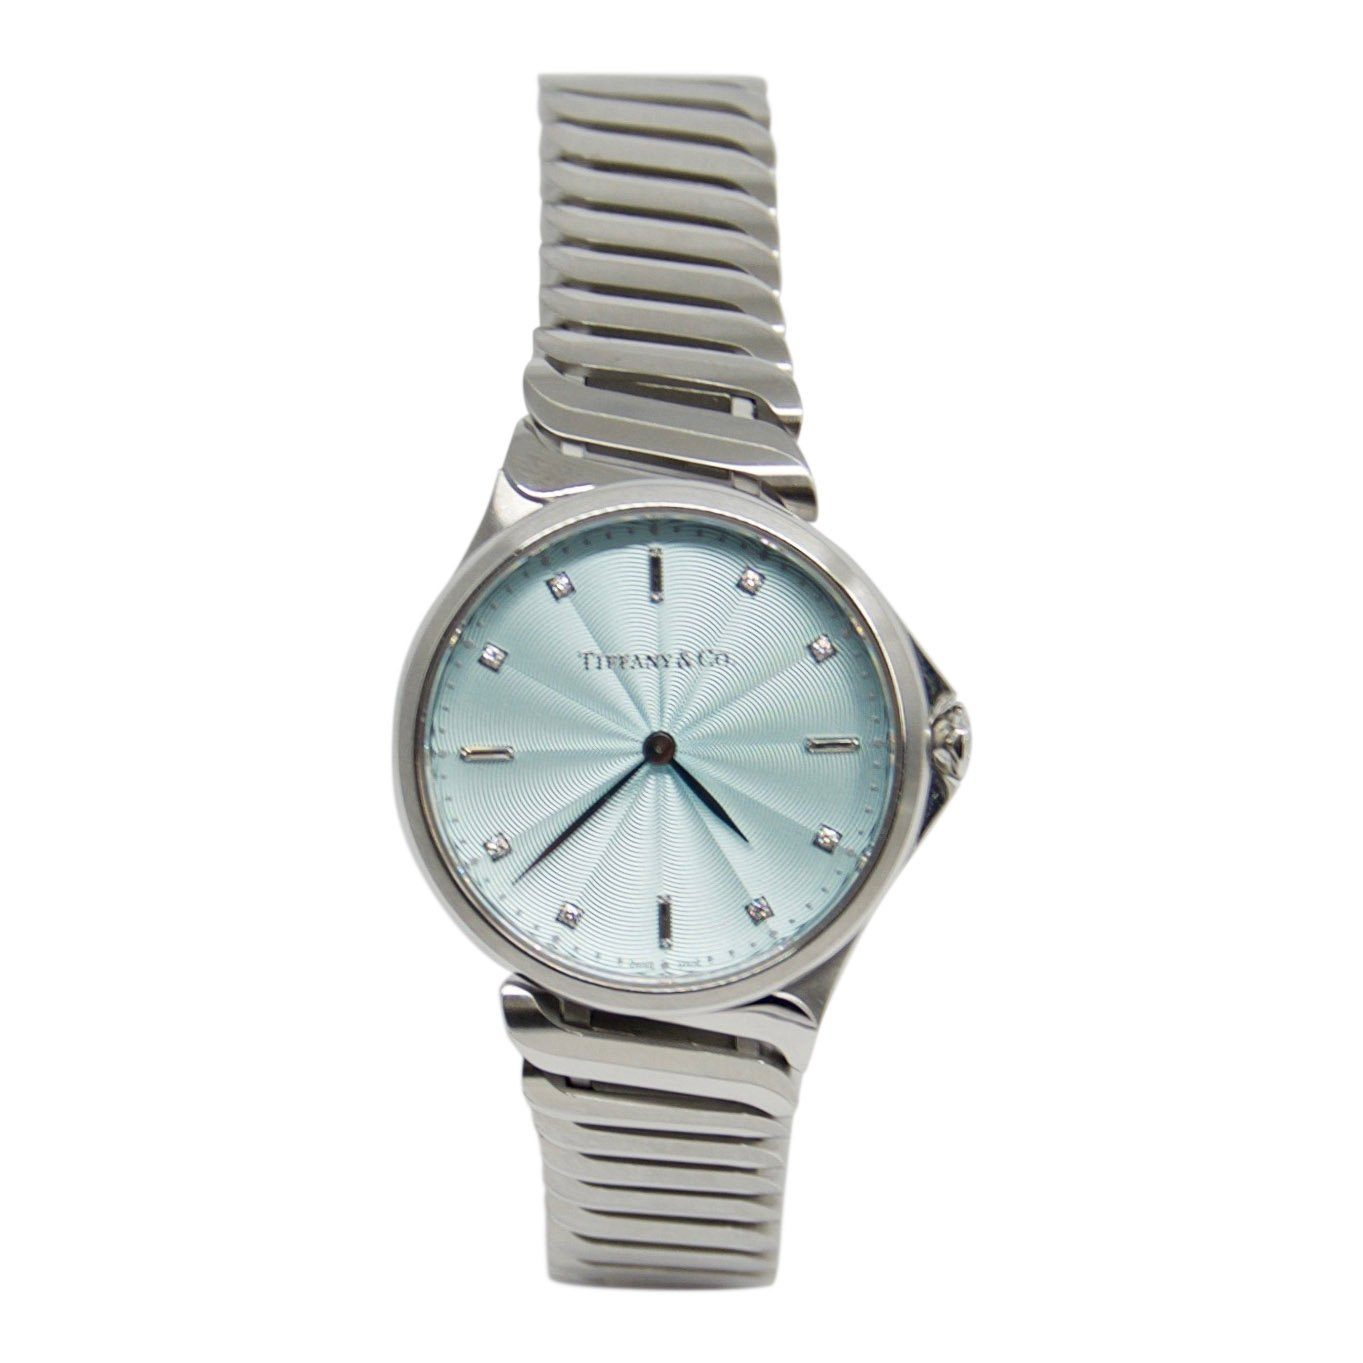 8c8a0f51af56 Tiffany   Co. Metro 2-Hand 28 mm Watch - Oliver Jewellery